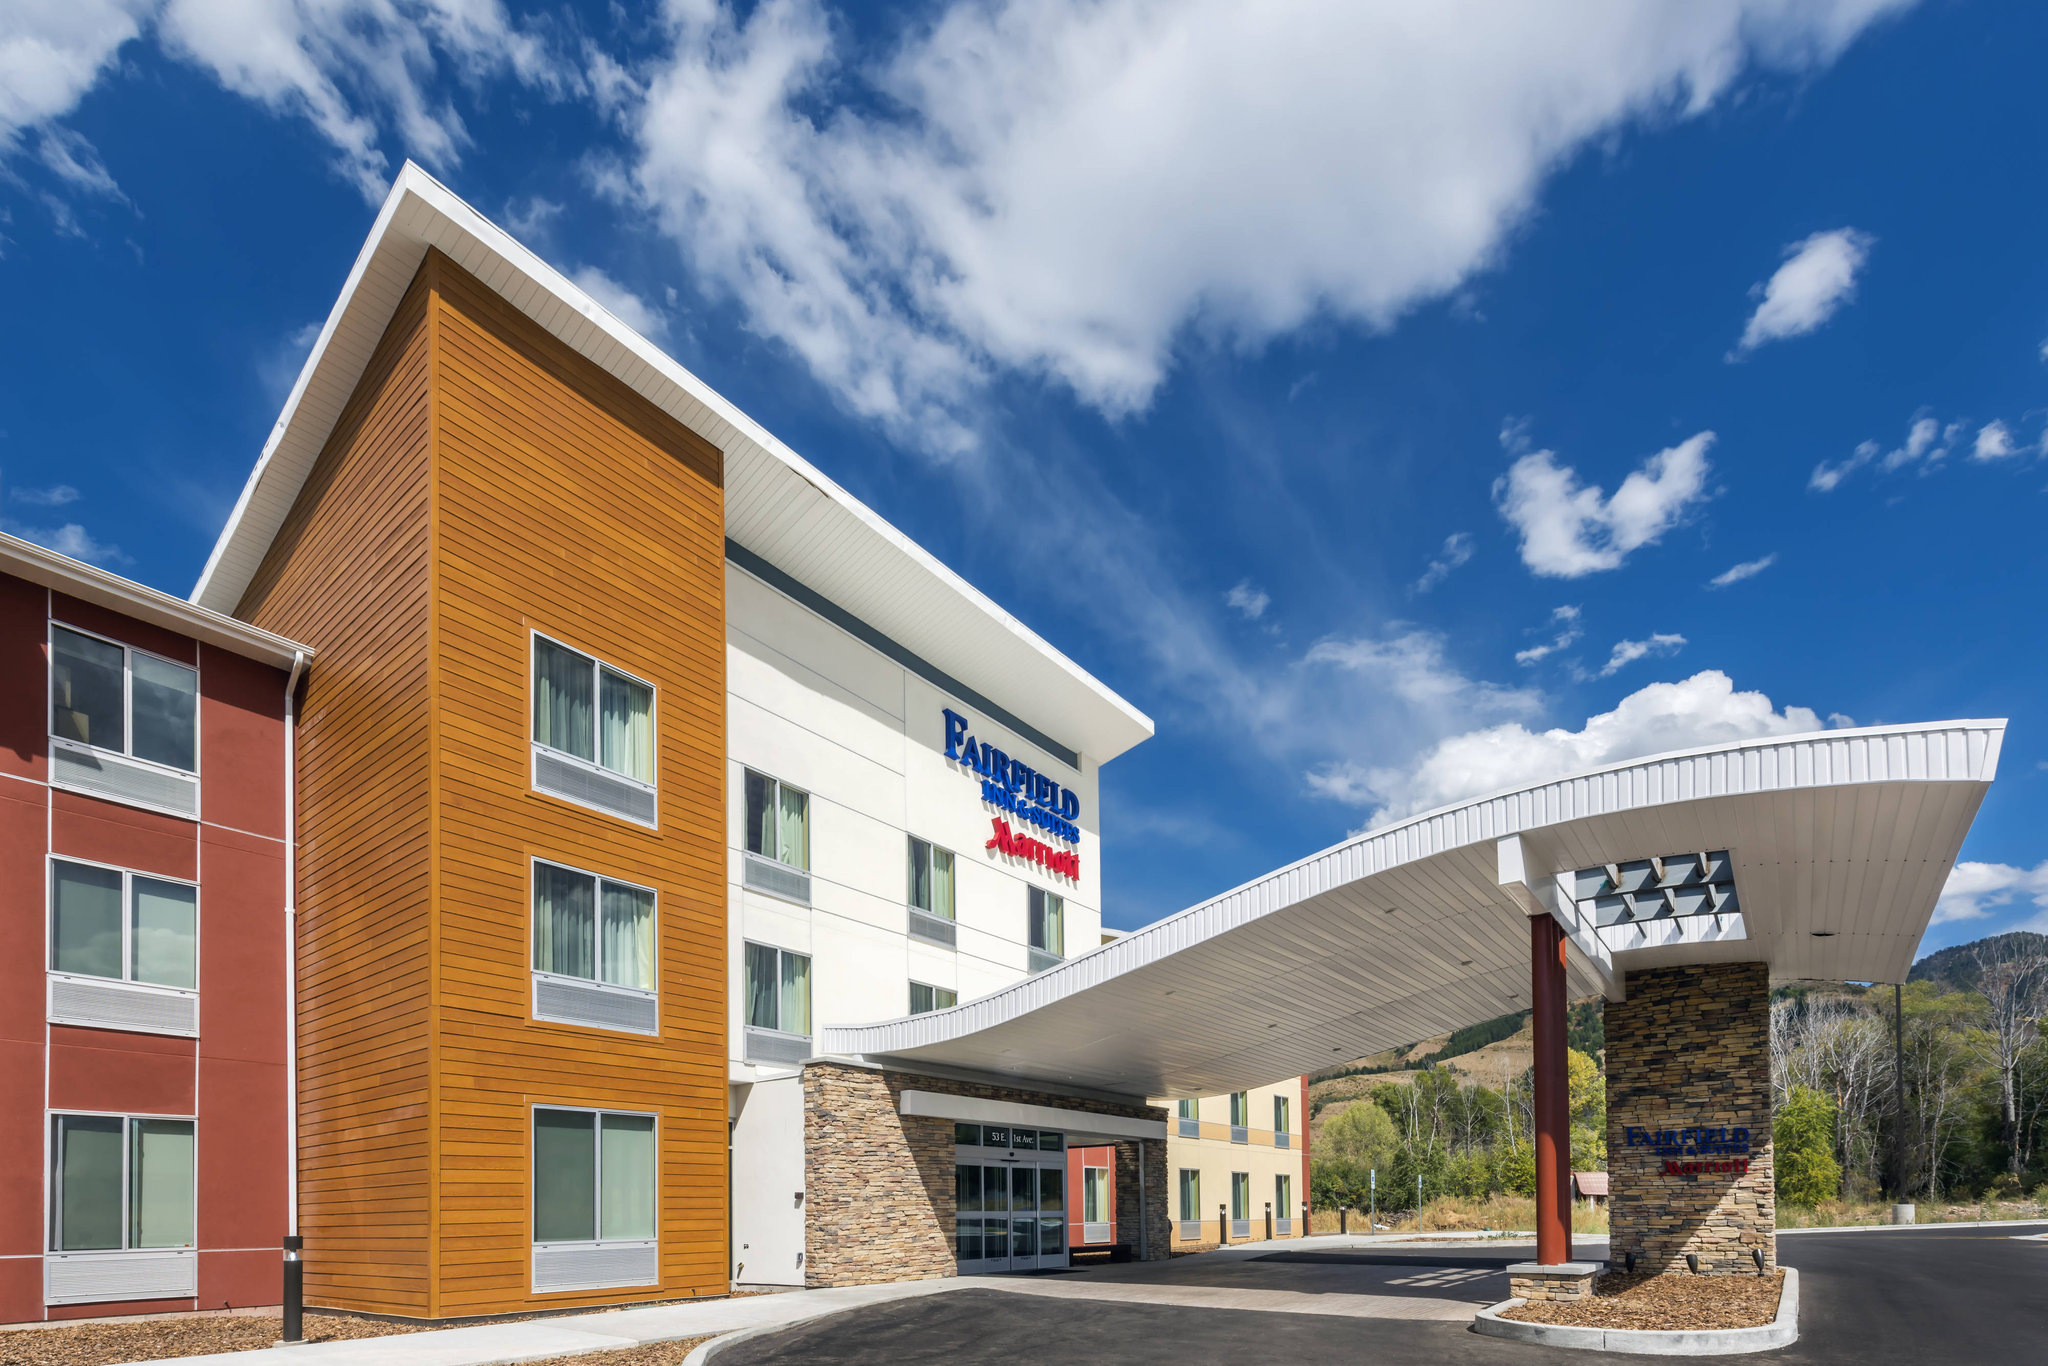 Fairfield Inn & Suites Afton